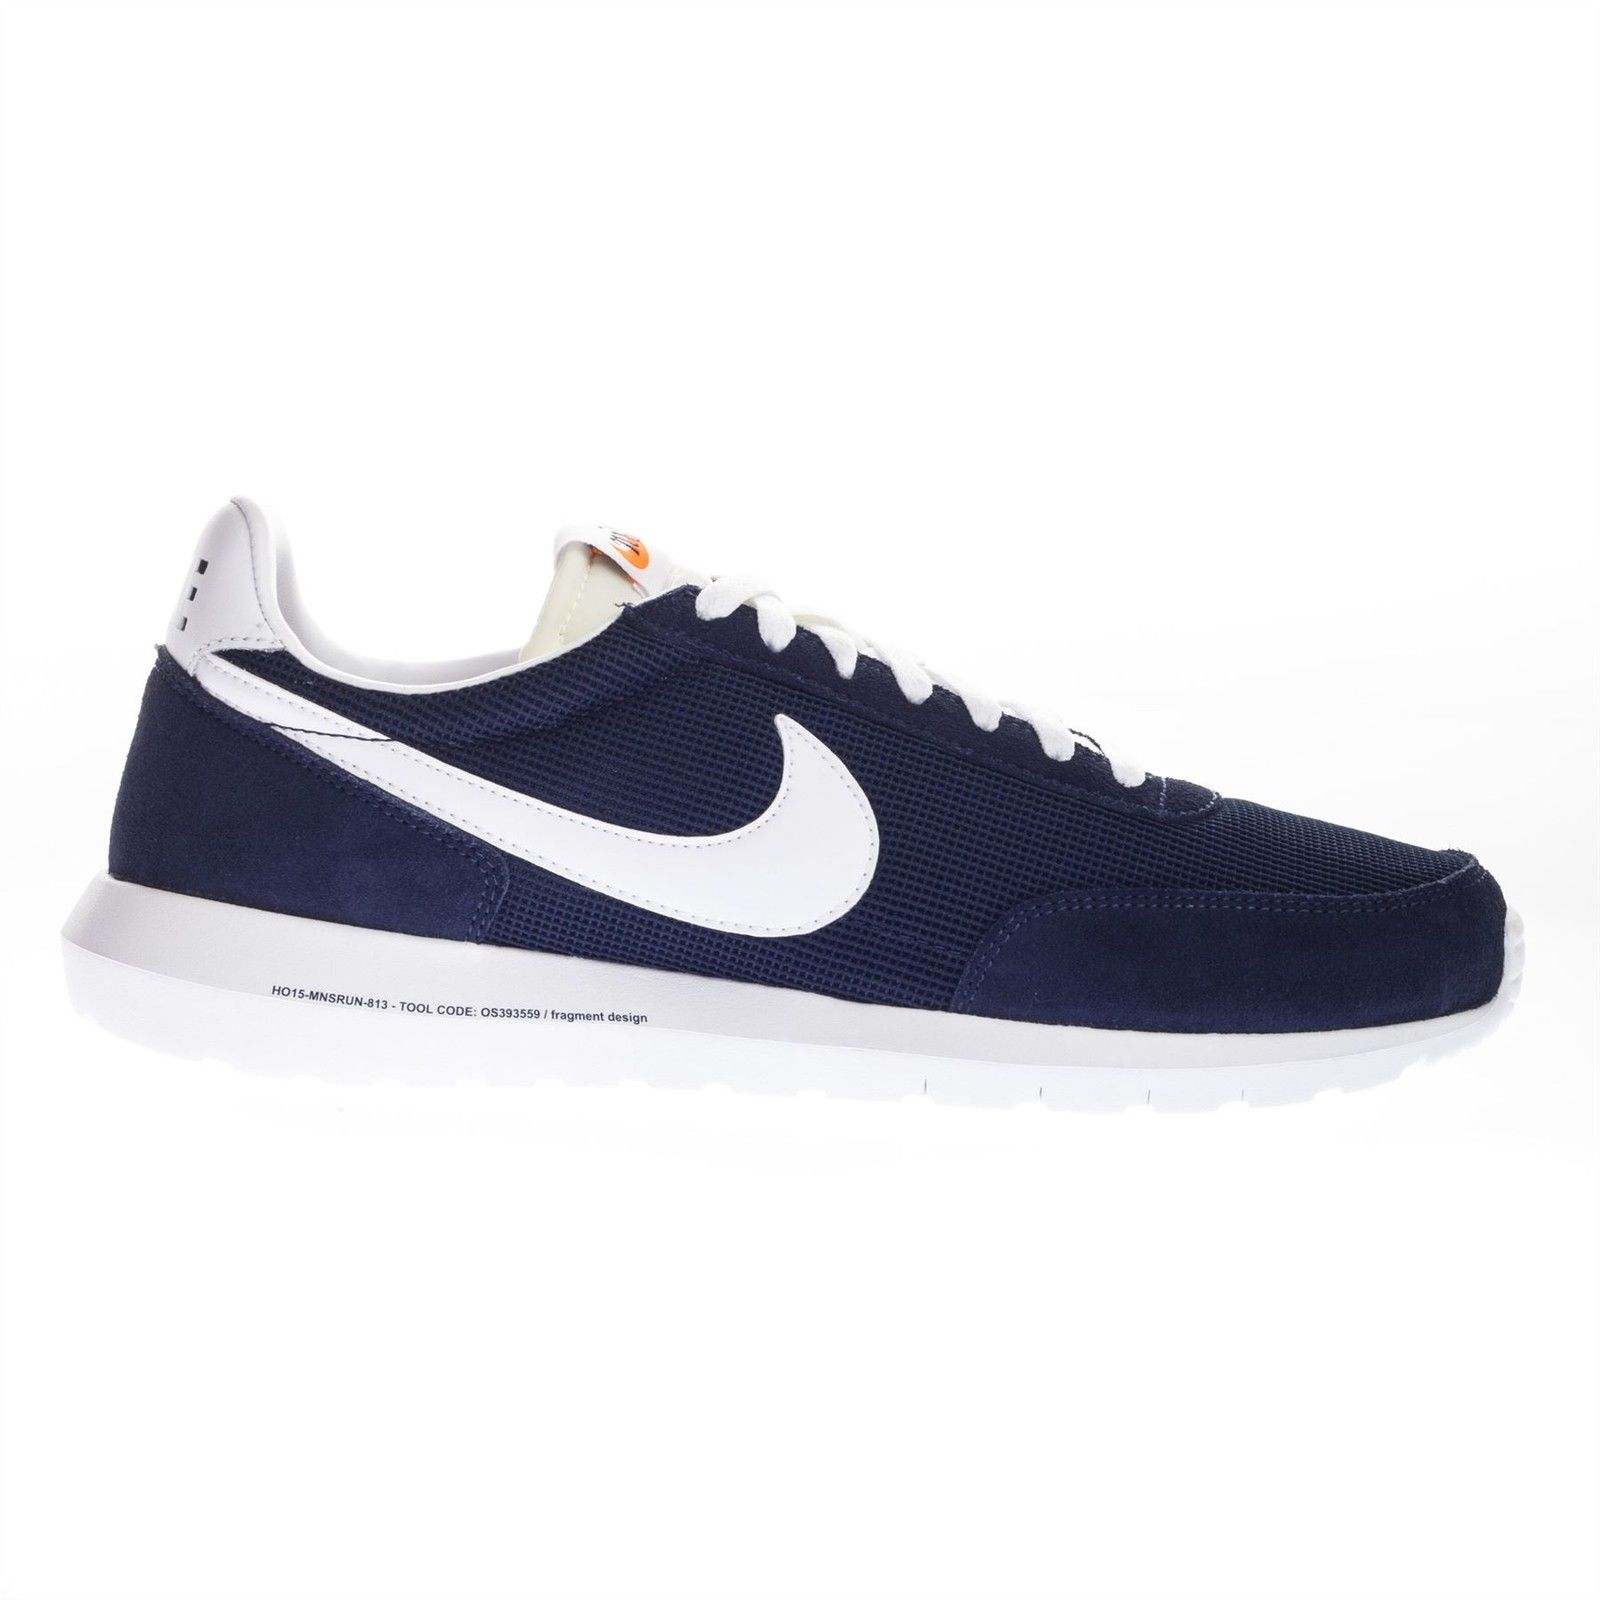 Nike Men's Roshe Low Top Trainers Navy Blue Active Gym Rubber Sole Lace Up